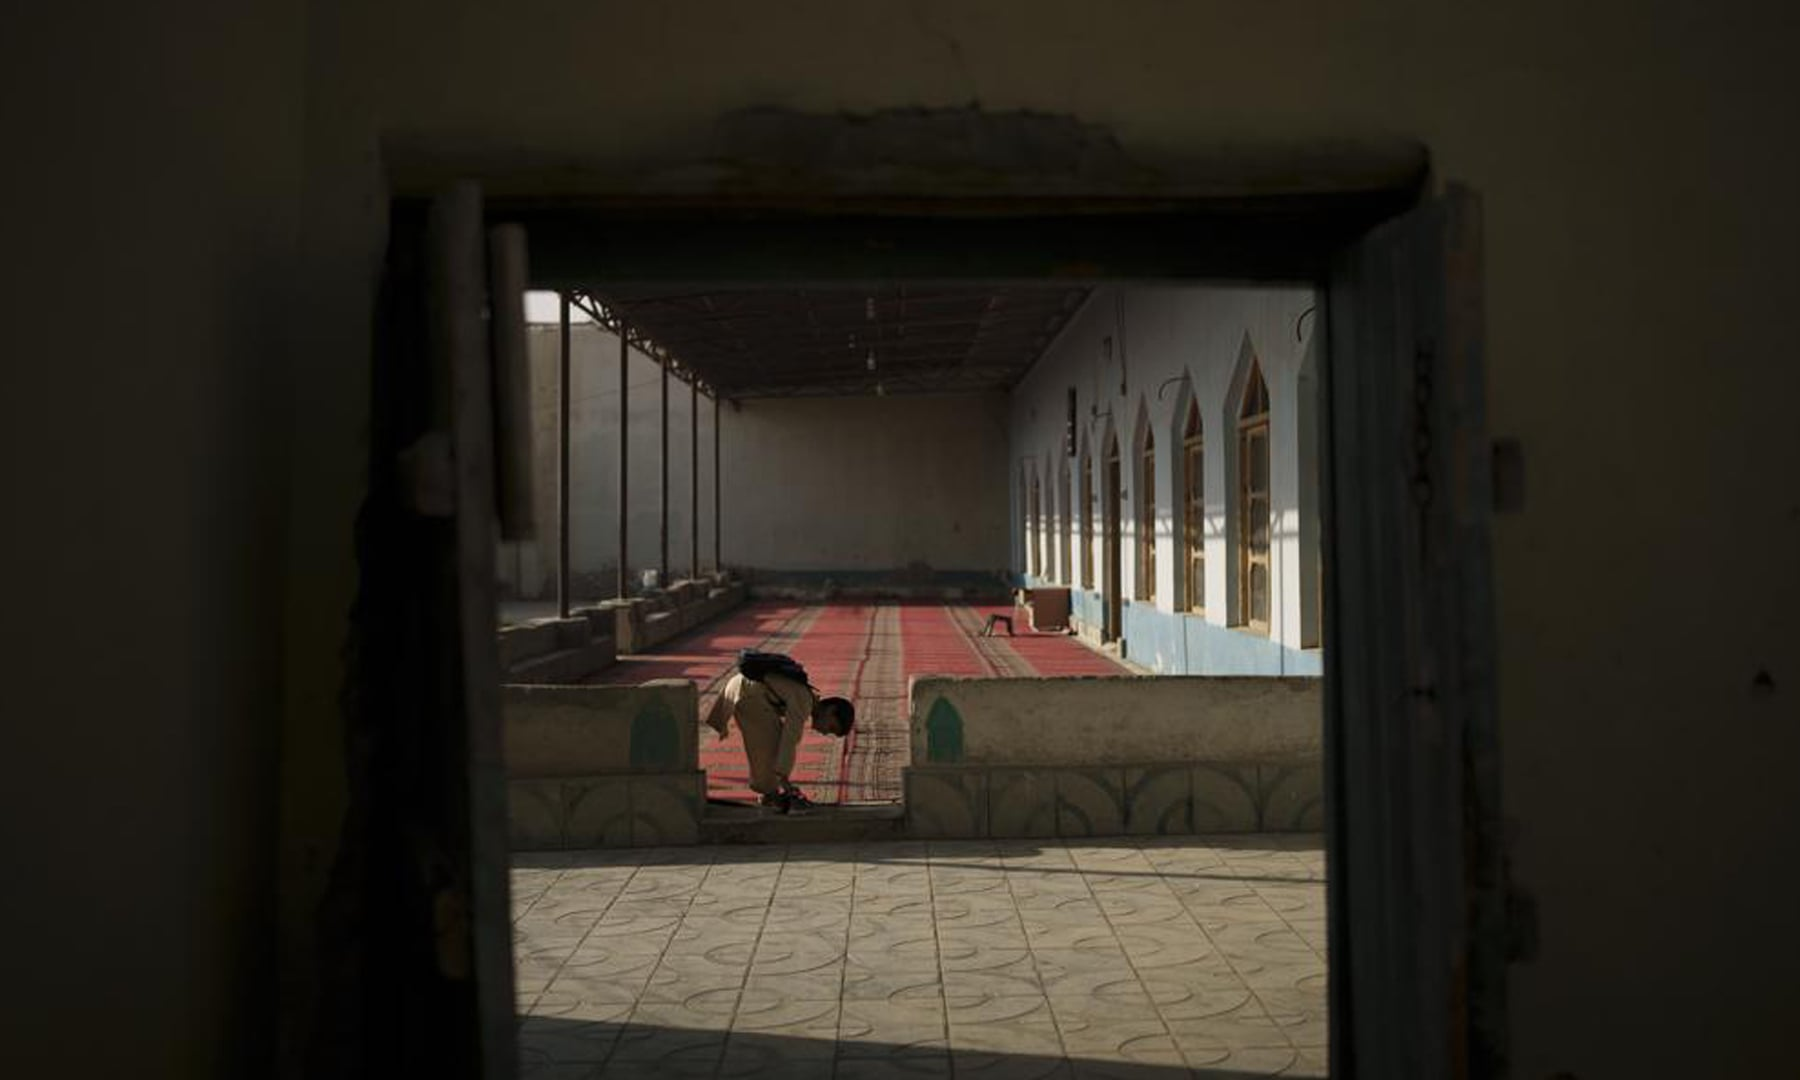 An Afghan boy remove his shoes before entering the mosque for class at a madressah in Kabul, Afghanistan. — AP